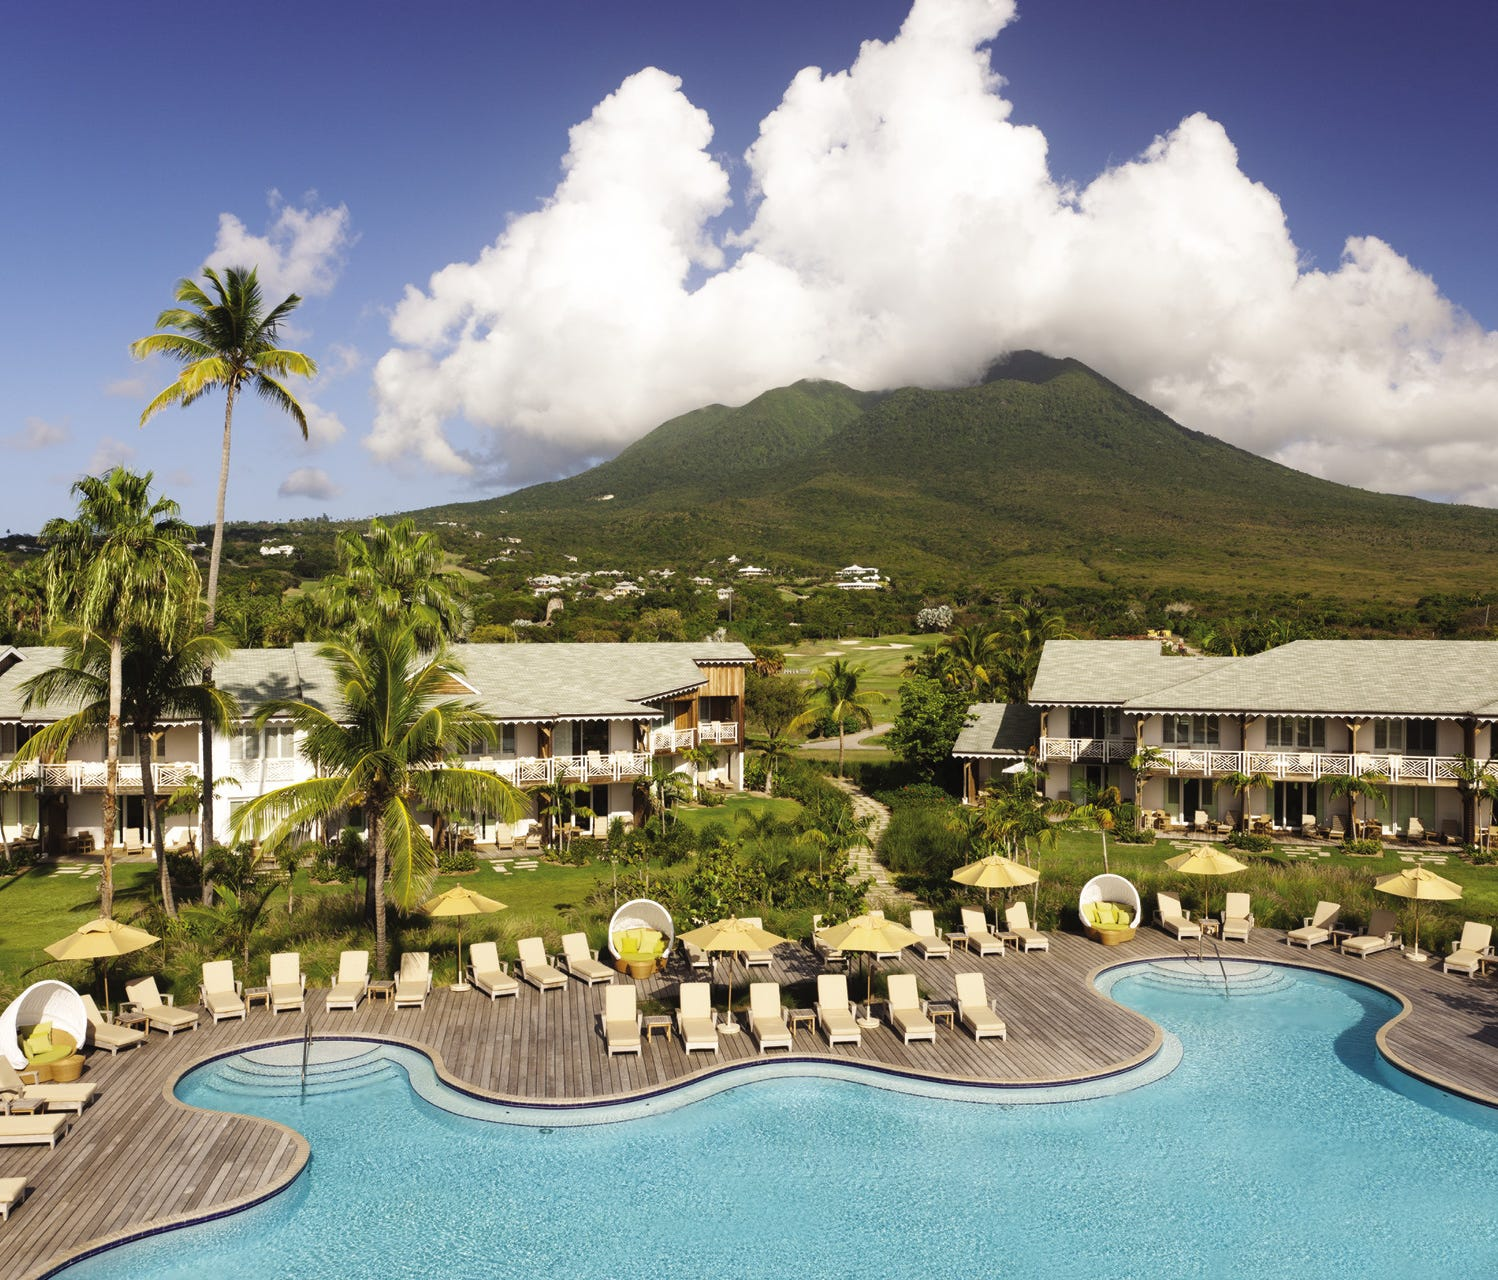 Beachfront posh with suites, villas and foodie fabulous restaurants, Four Seasons Resort Nevis is also where you'll find a trio of pedigree pools.